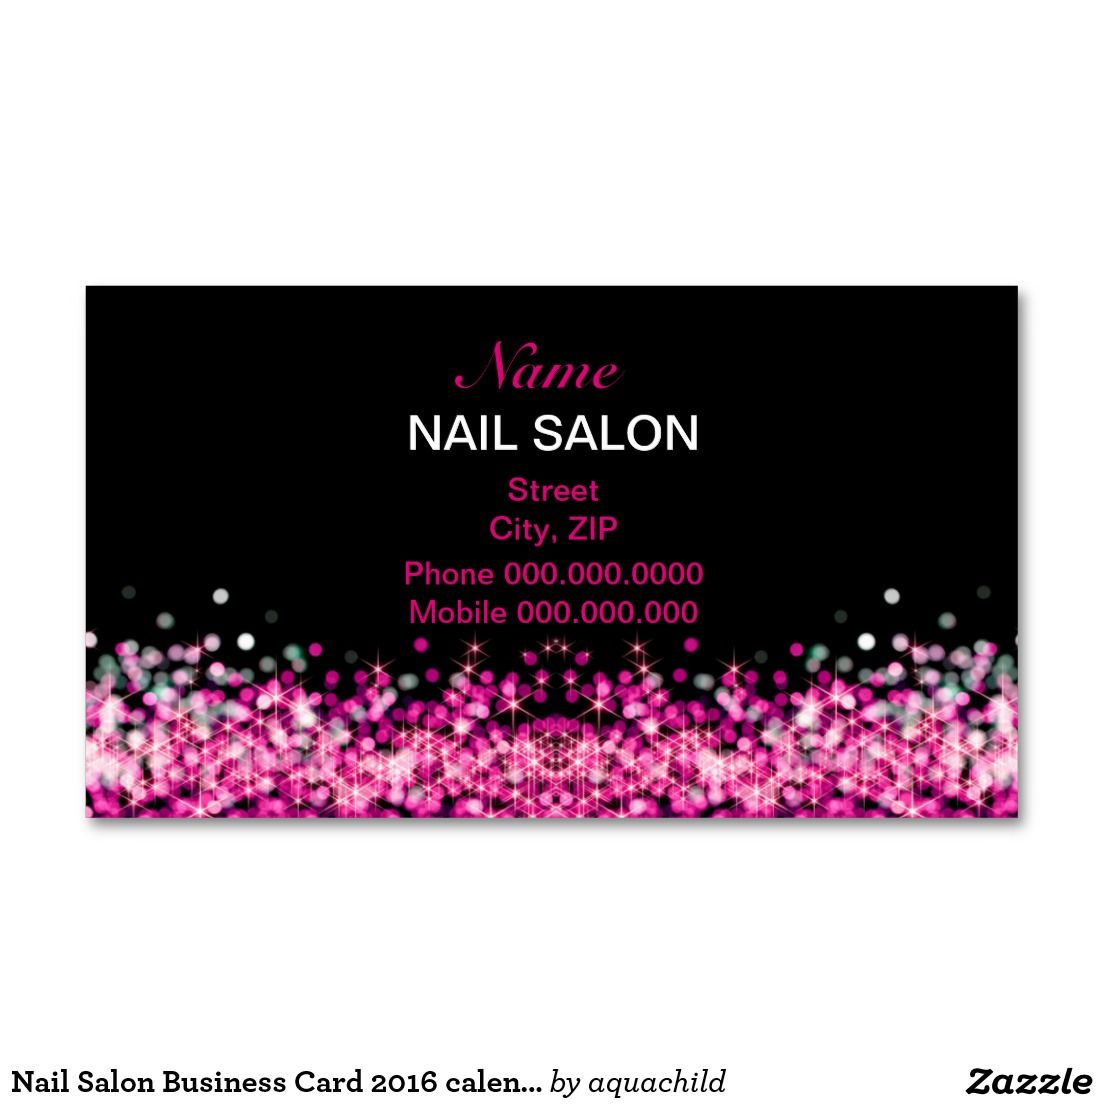 Nail salon business cards selol ink nail salon business cards colourmoves